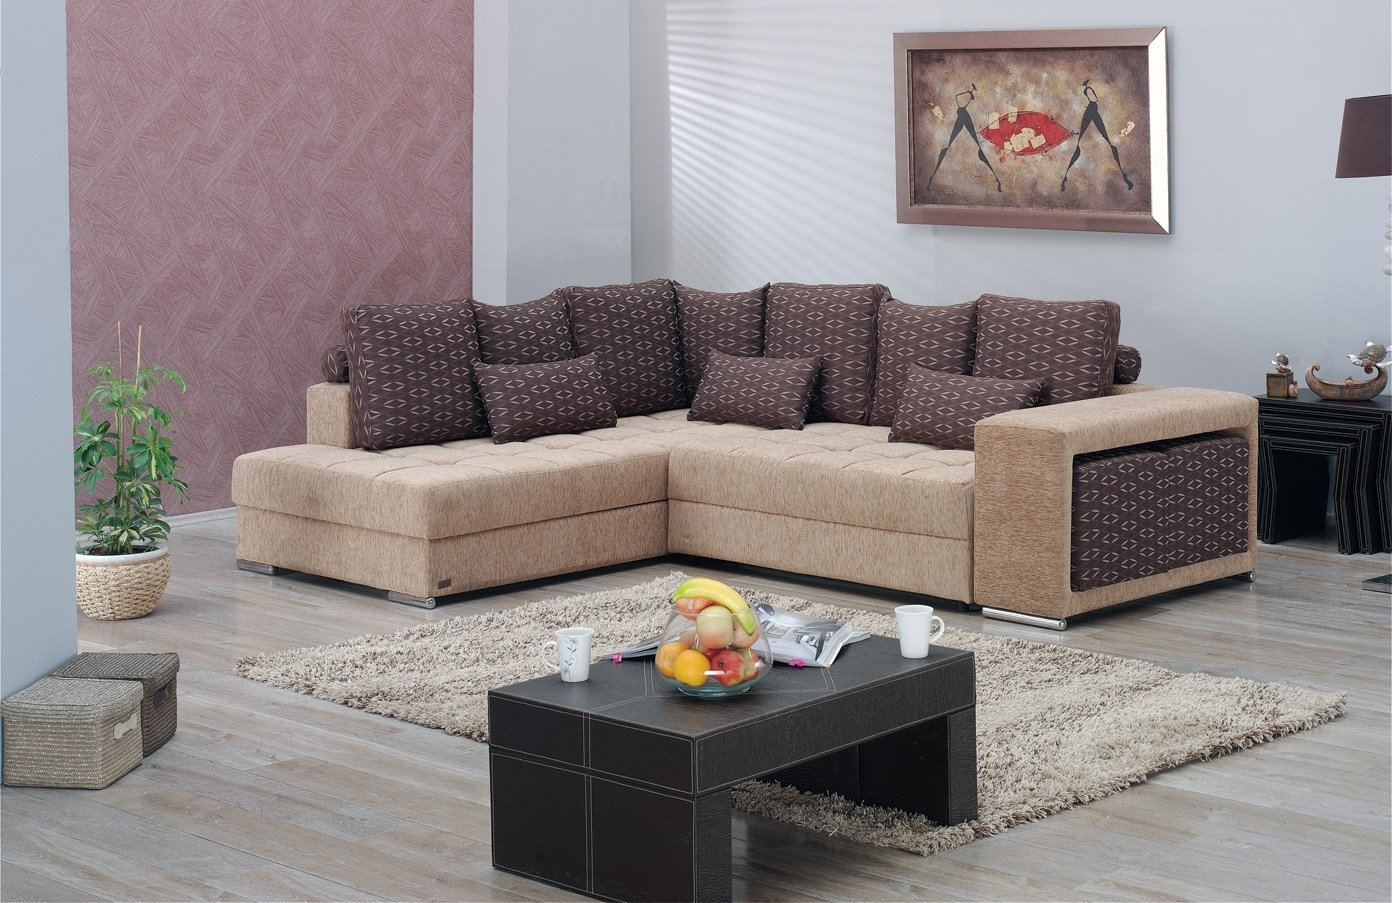 High Quality Sectional Sofas Regarding Current Sectional Sofa Design: Elegant Sectional Sofa Los Angeles Best (View 16 of 20)